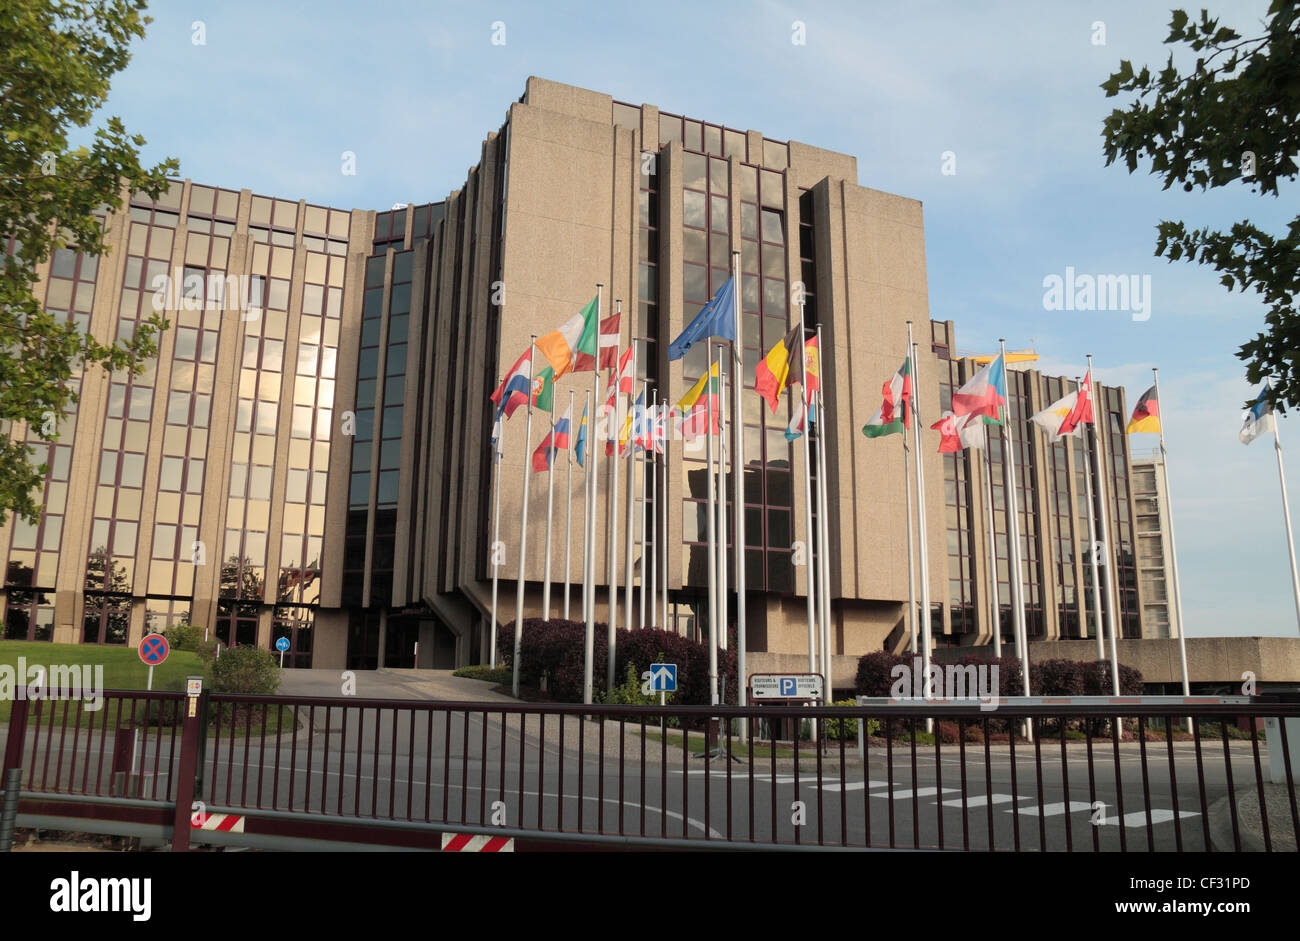 european court of auditors So far, little research has been published on the role of standards setting out the  principles underlying the european court of auditors' (eca).